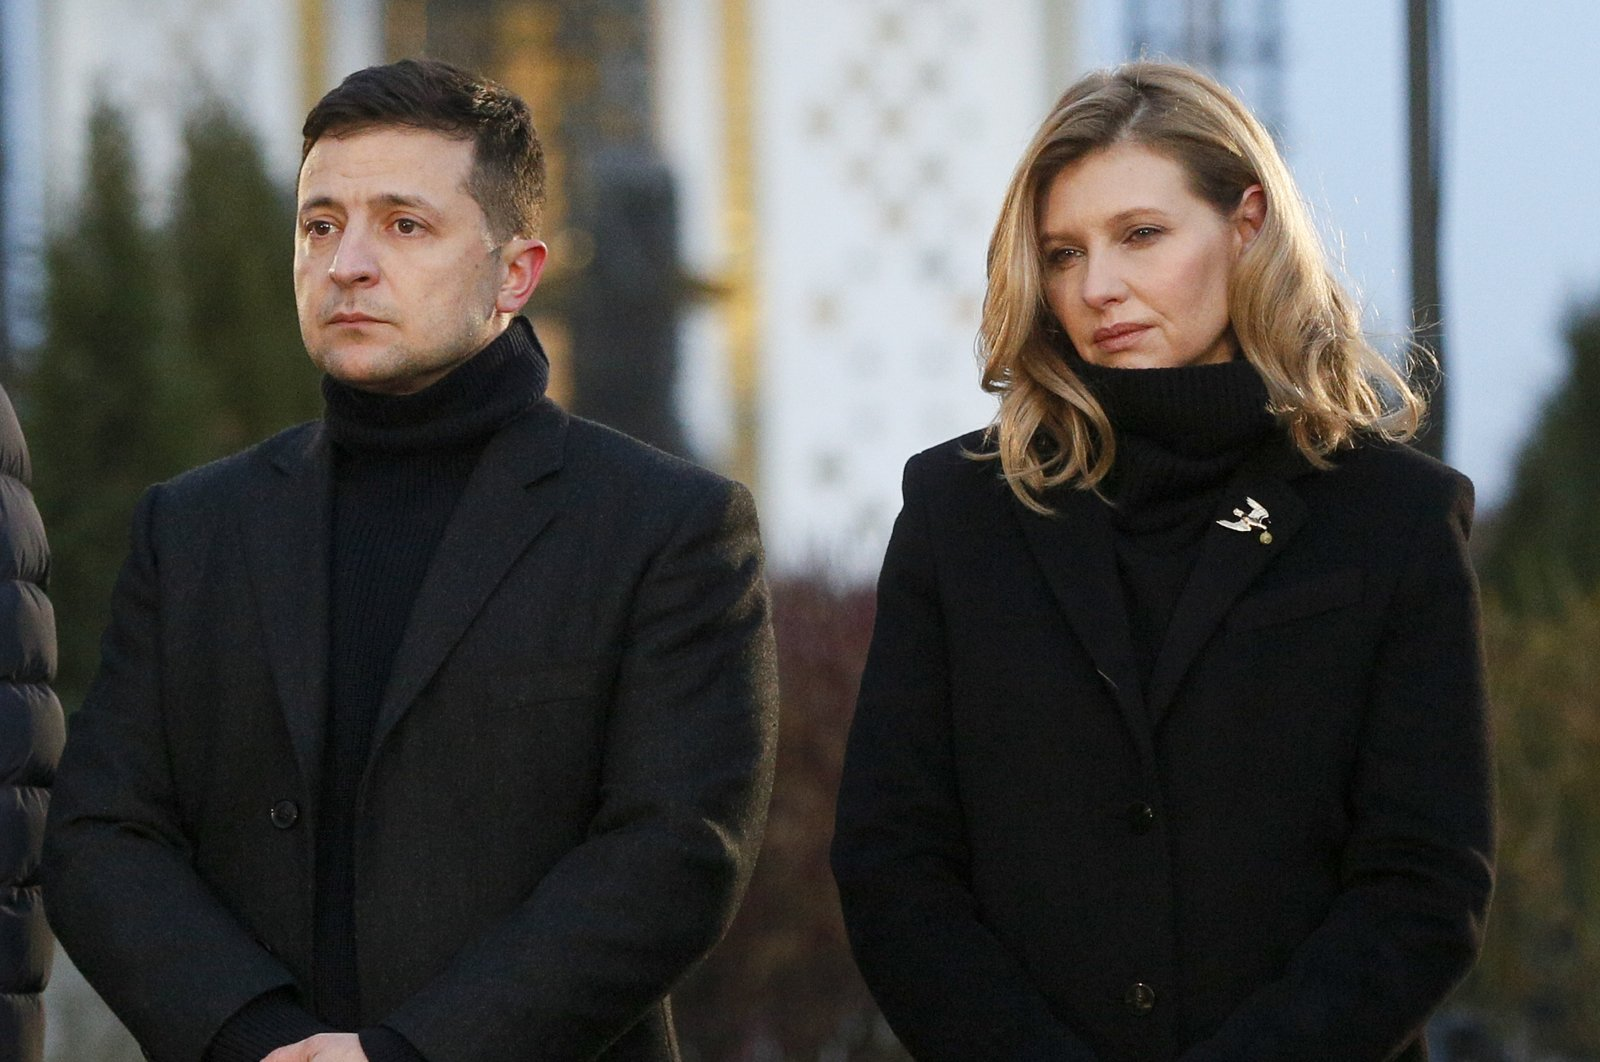 President Volodymyr Zelenskiy and his wife Olena pay tribute at a monument to victims of the Great Famine in Kyiv, Ukraine, Nov. 23, 2019.  (AP Photo)